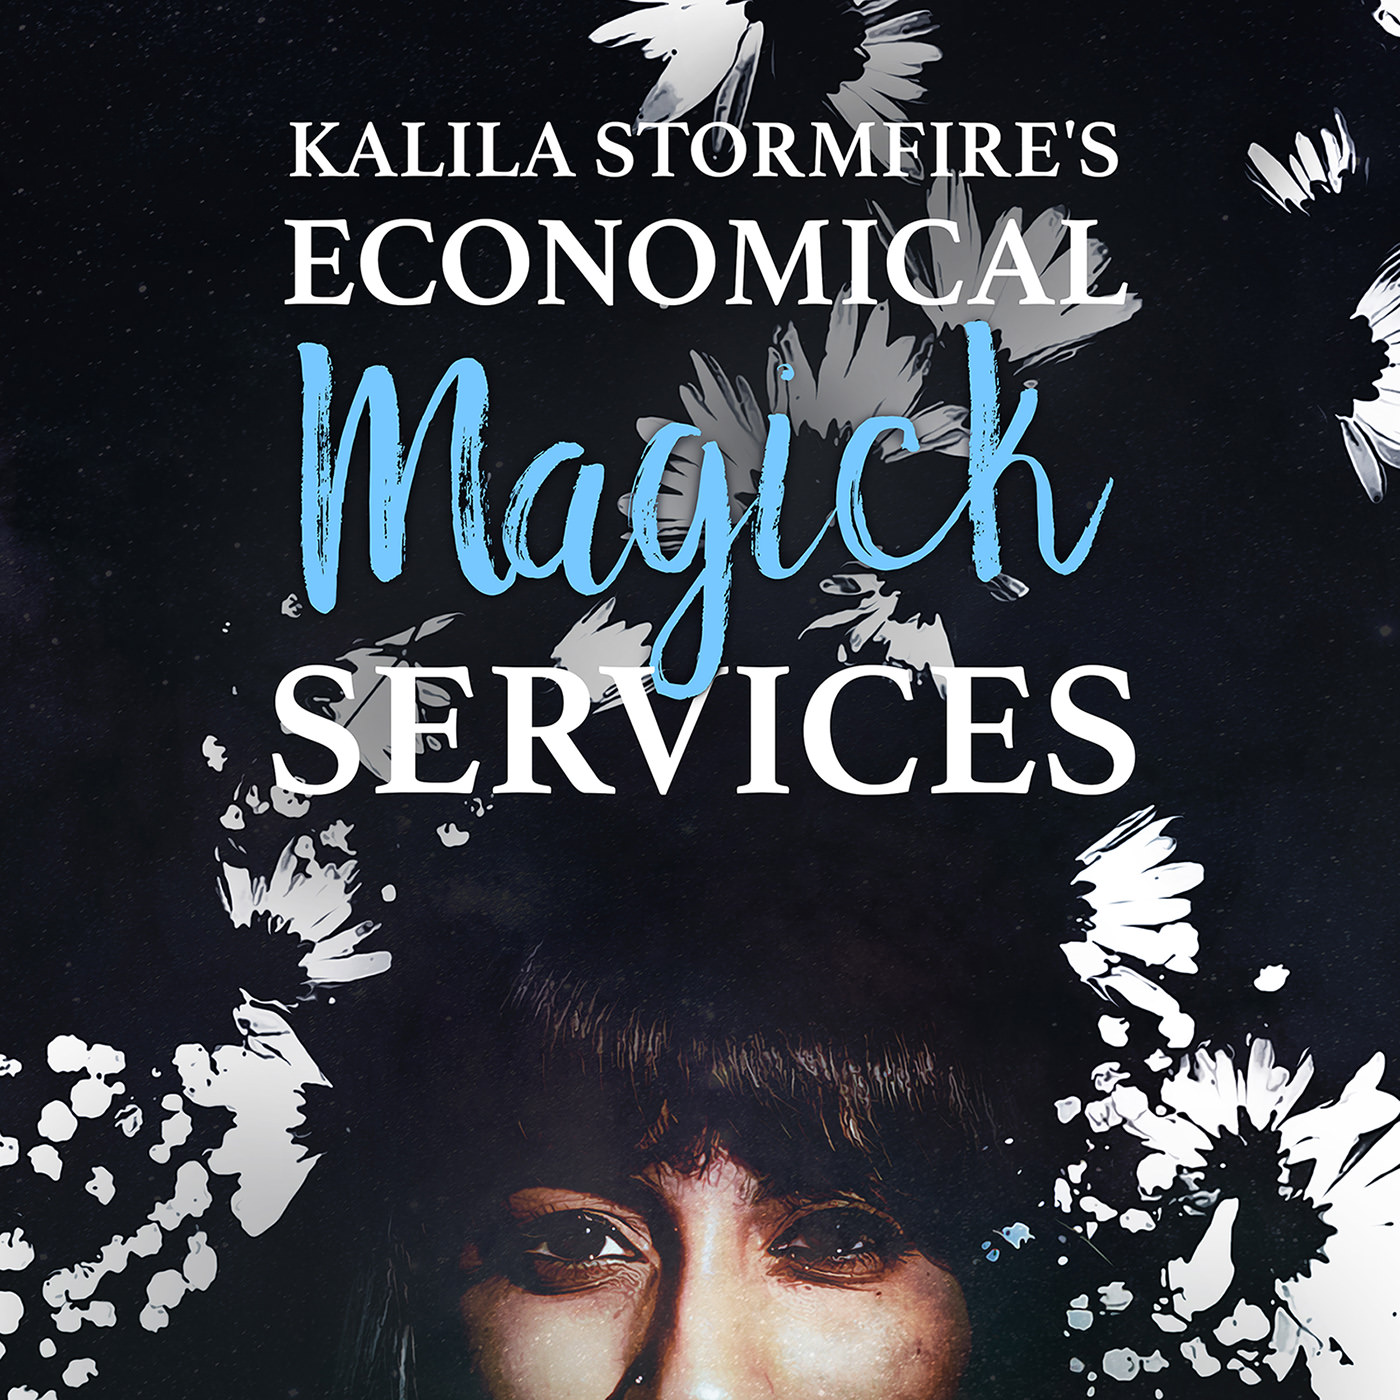 Kalila Stormfire's Economical Magick Services - Cover